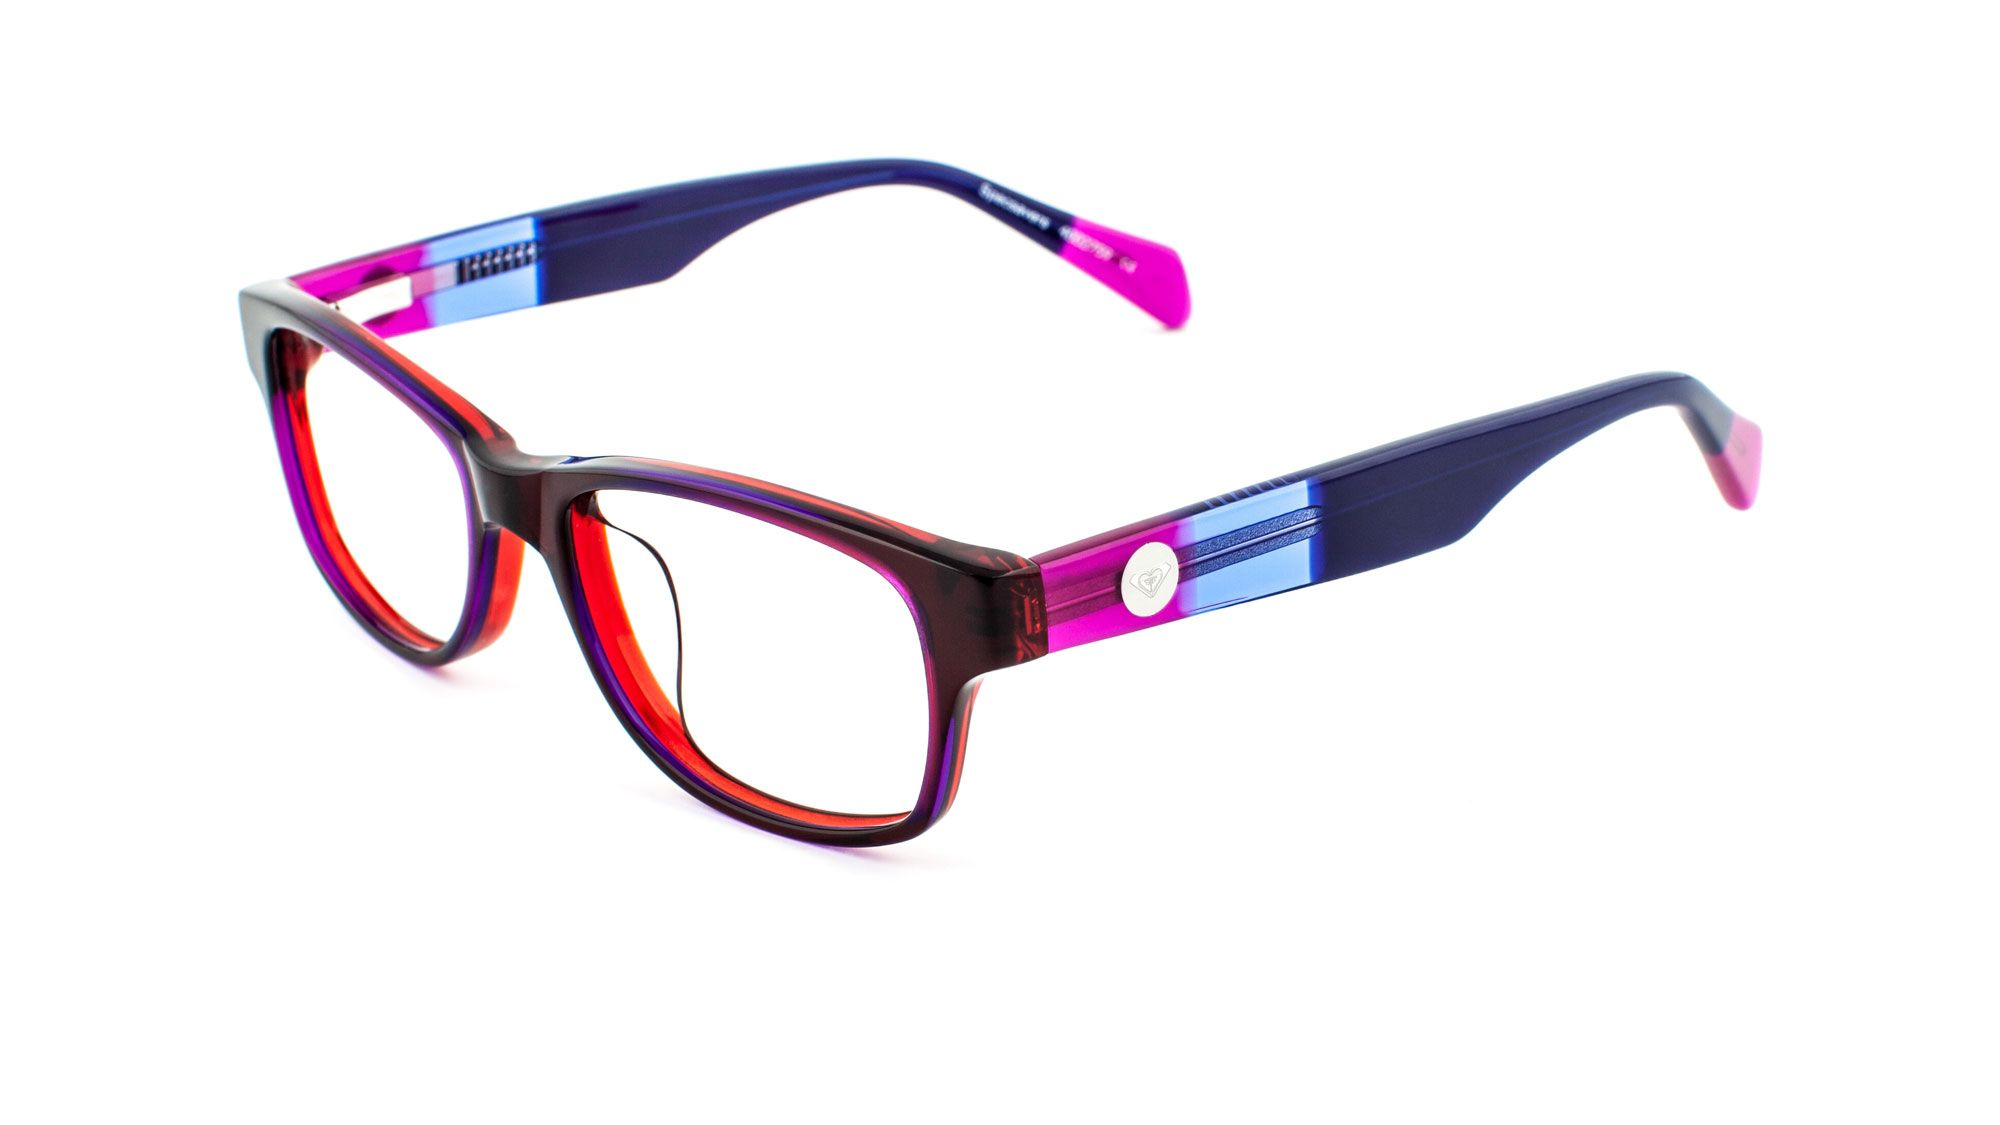 ROXY 26 Brillen op Roxy | Specsavers | jazz | Pinterest | Brille